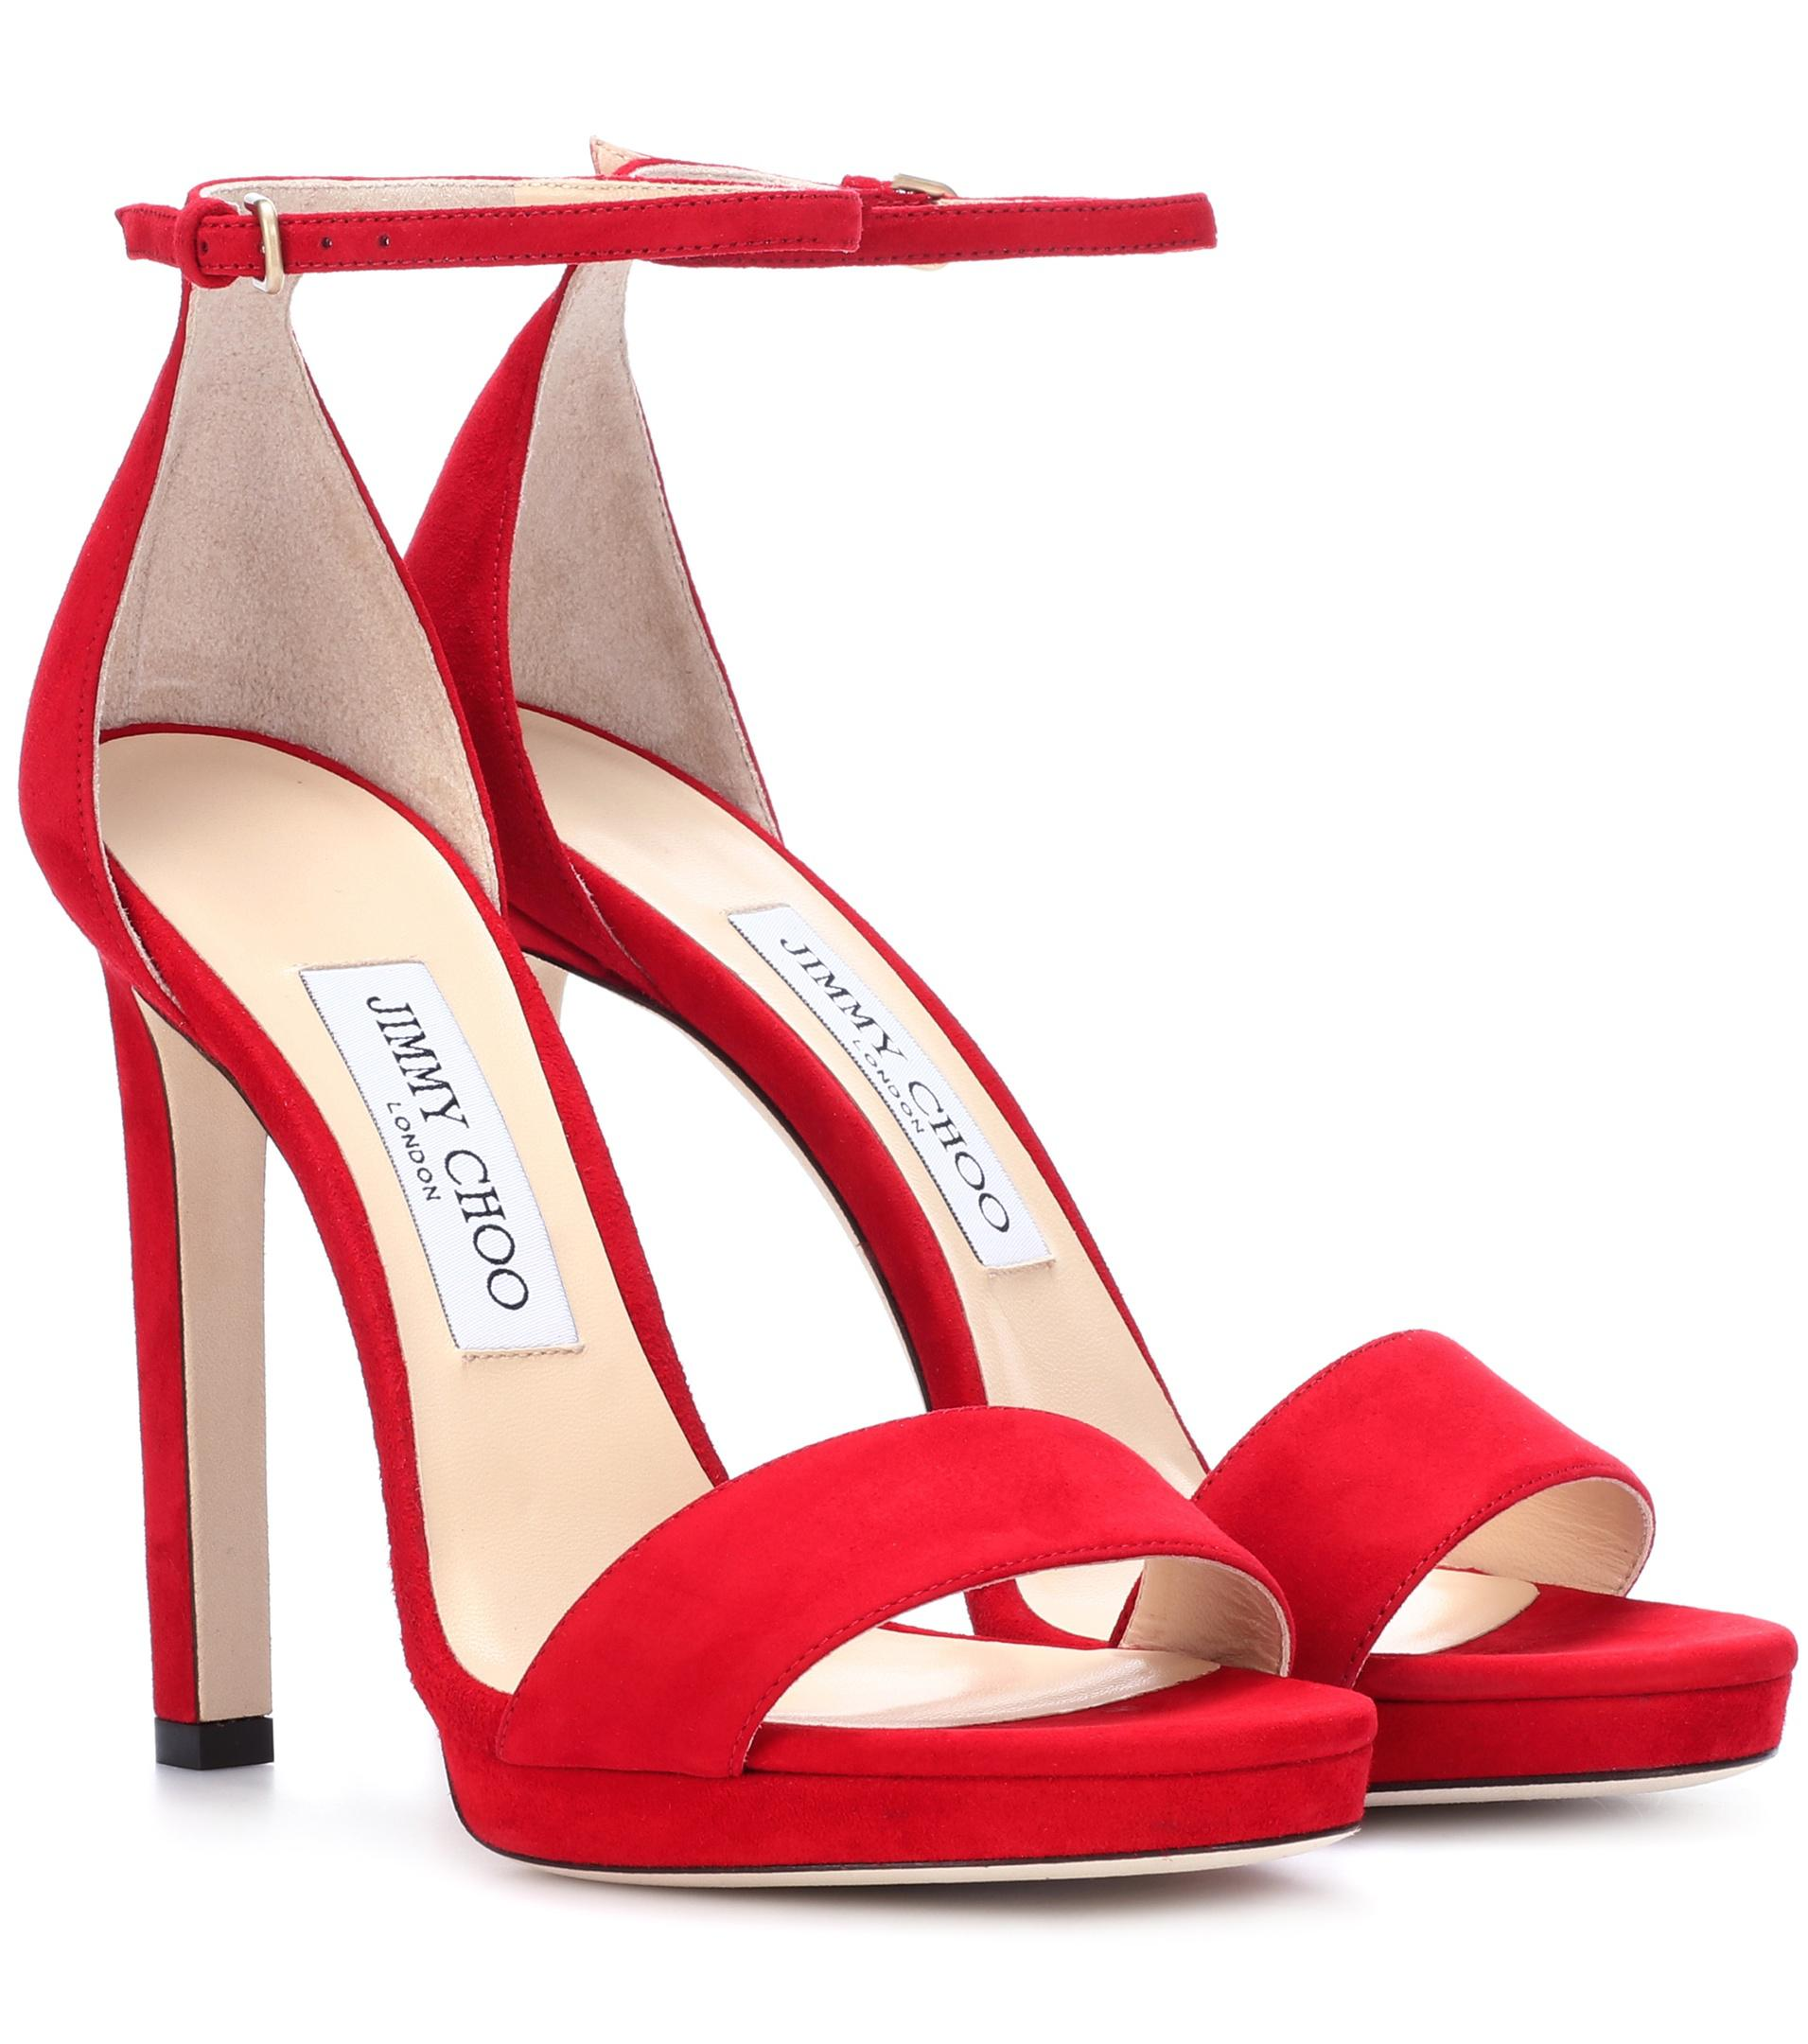 d4cc1dafe5f7d ... coupon code for jimmy choo red misty 120 suede sandals lyst. view  fullscreen 3edff b476d